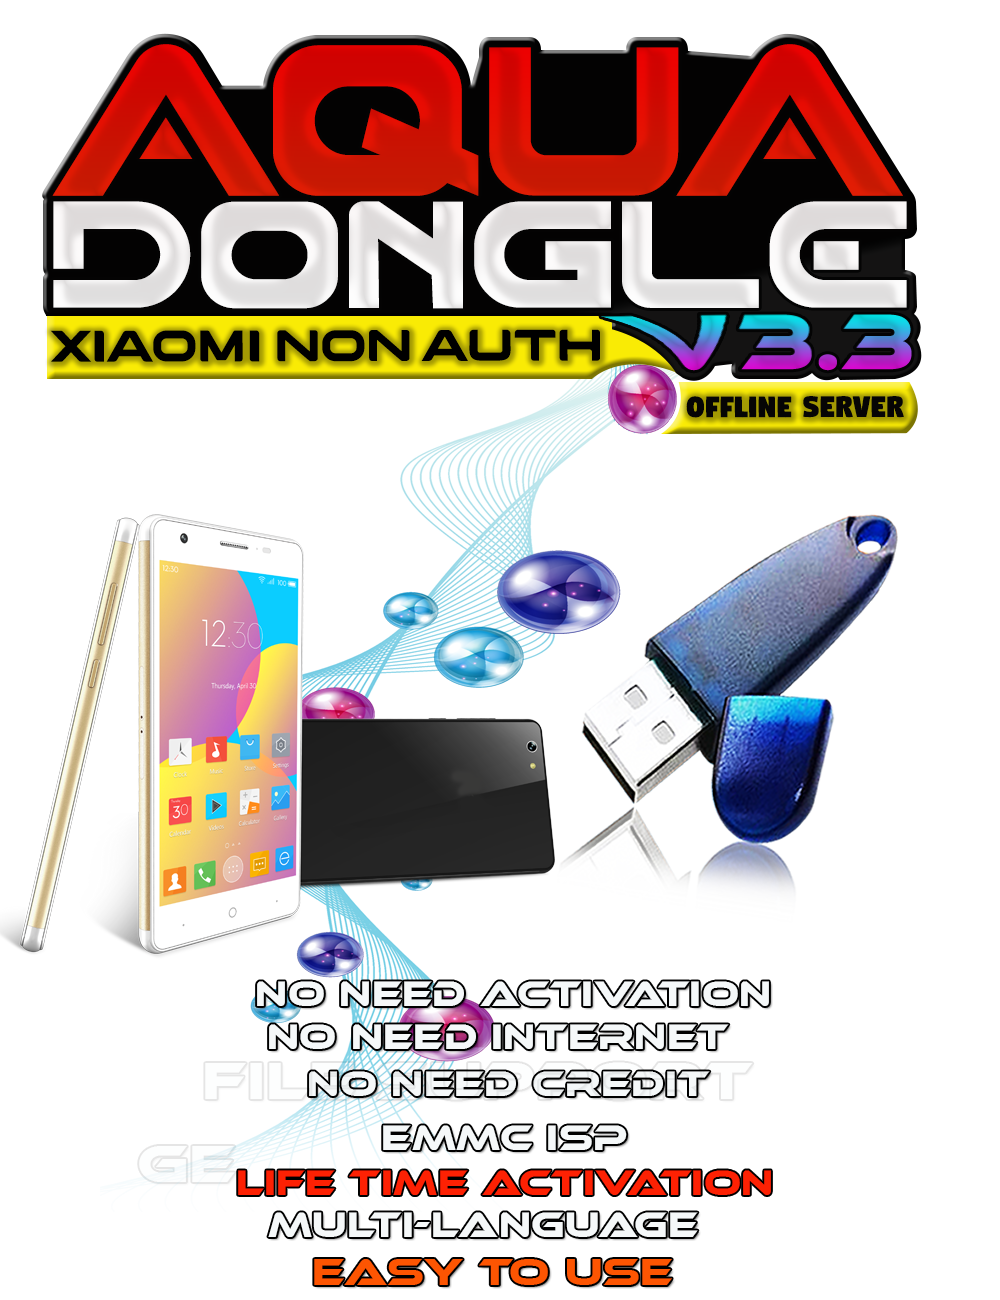 AQUA Dongle V3.3 Super Update Xiaomi Offline, OPPO OFP Extract & SPD Released